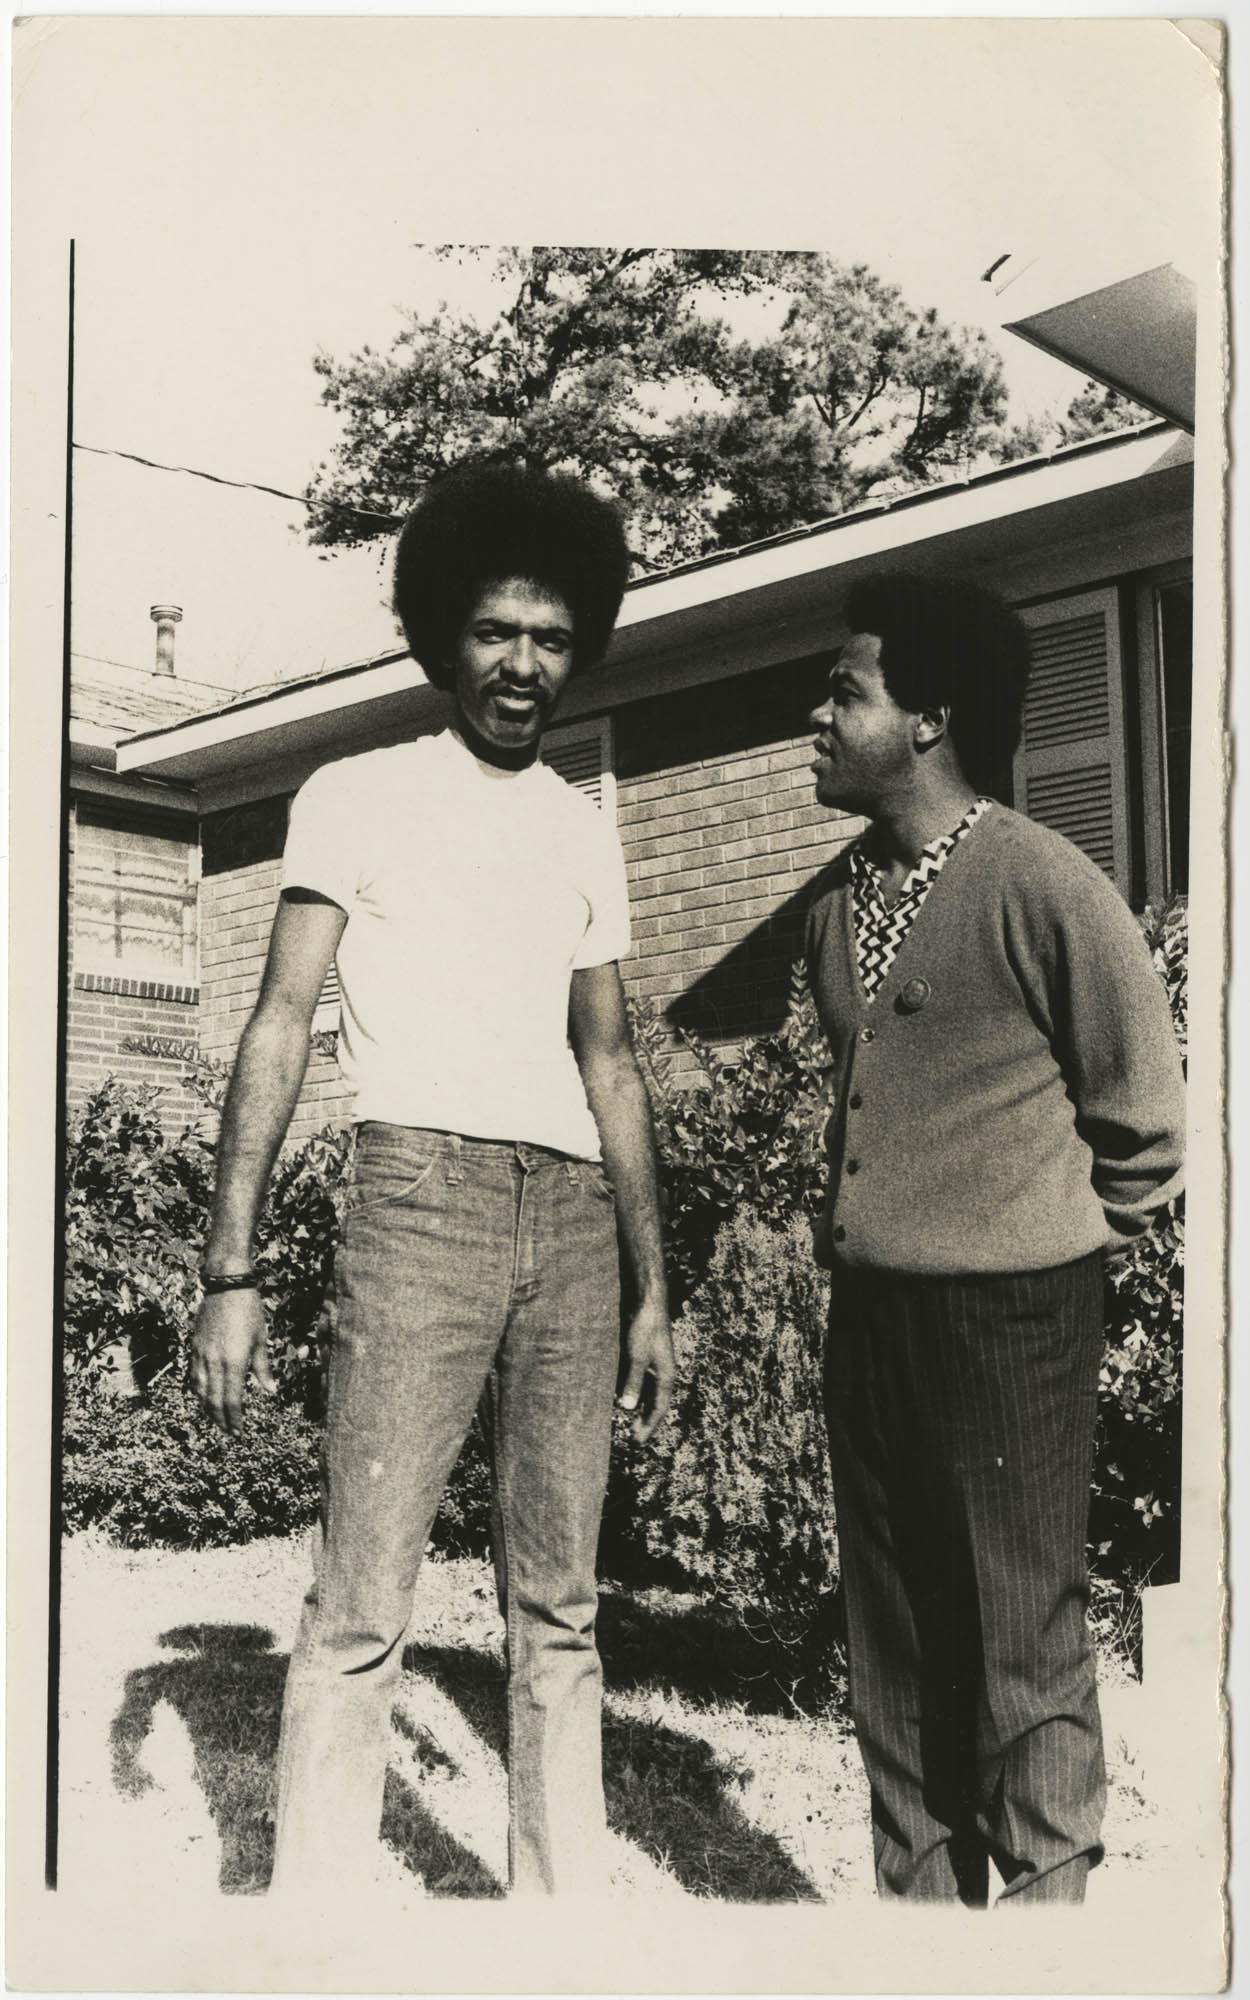 Photograph of Cleveland Sellers and Friend